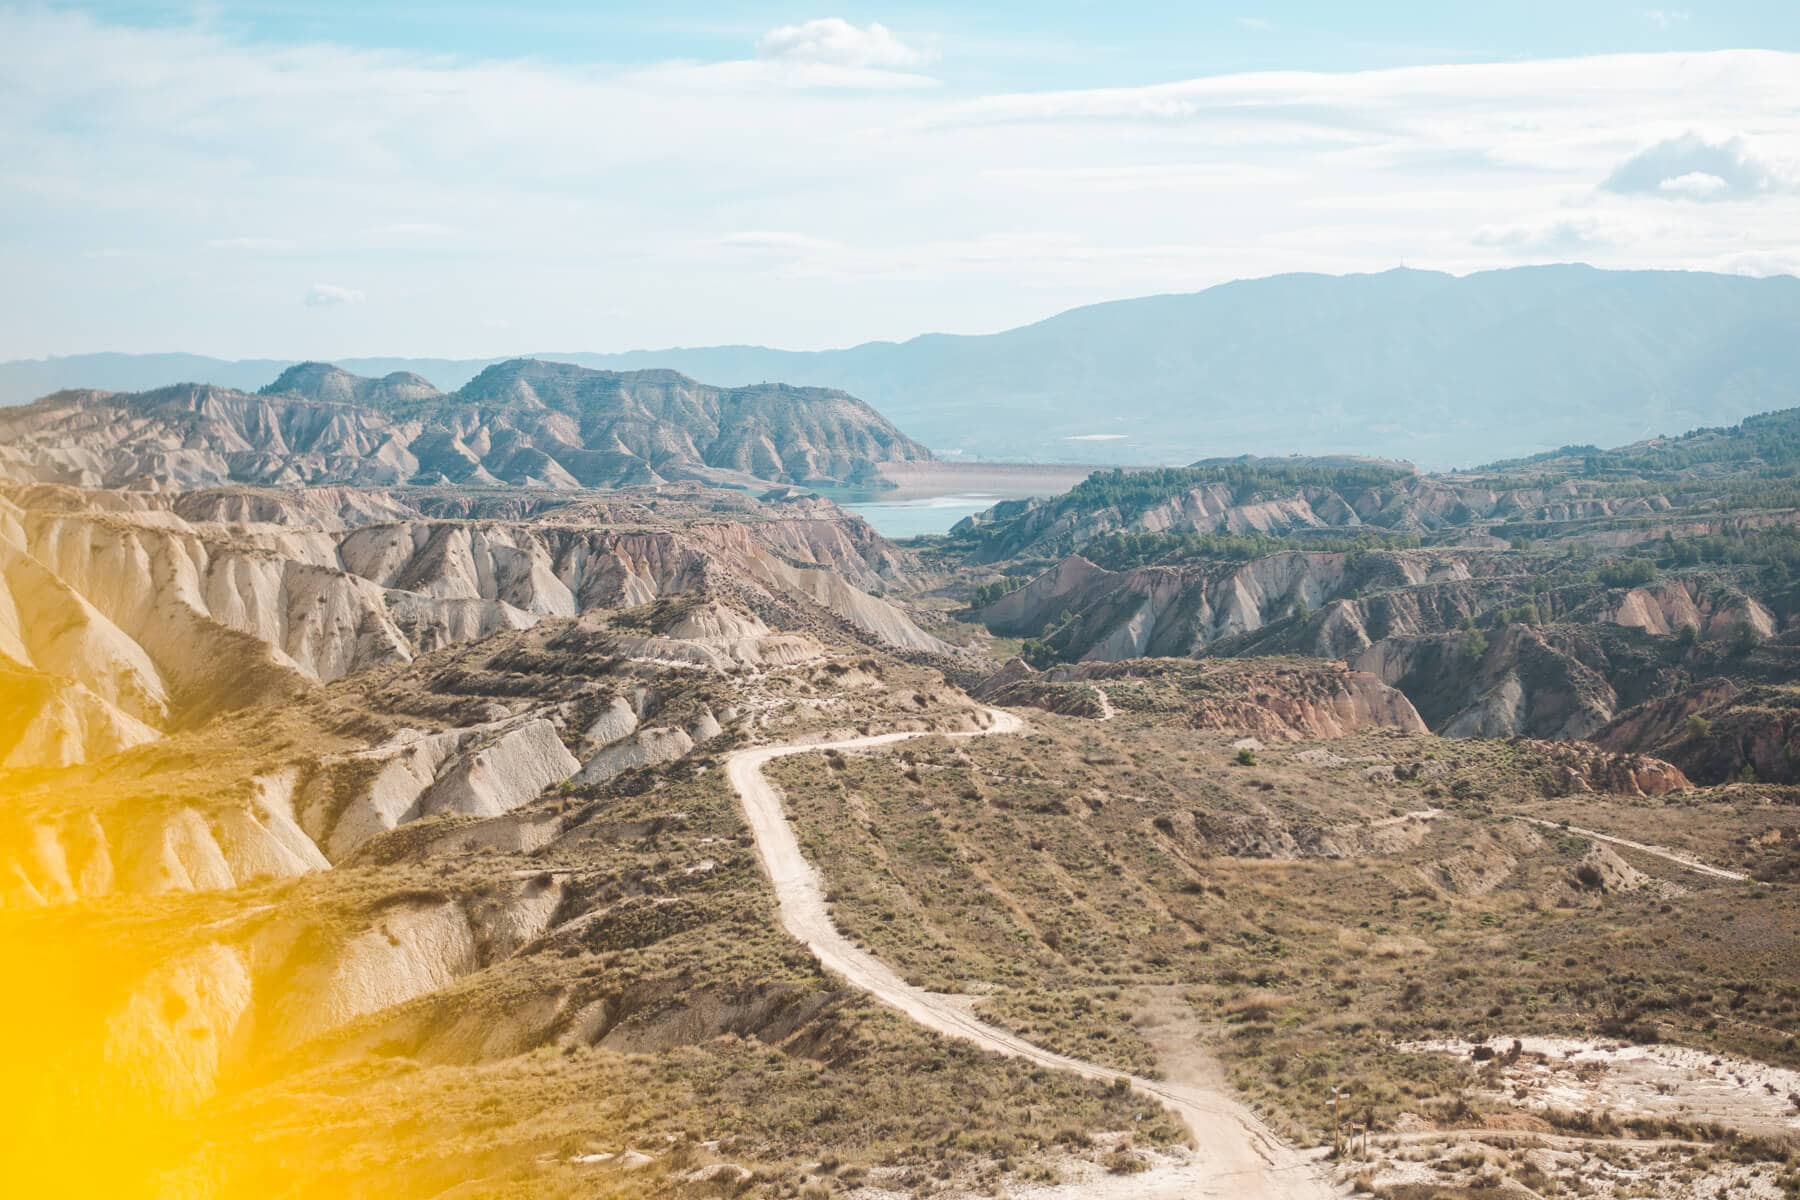 Barrancos de Gebas (also known as the Lunar Badlands) in Murcia, one of Spain's most beautiful natural wonders. One of the top things to do in Spain #murcia #spain #bucketlist #naturalwonder